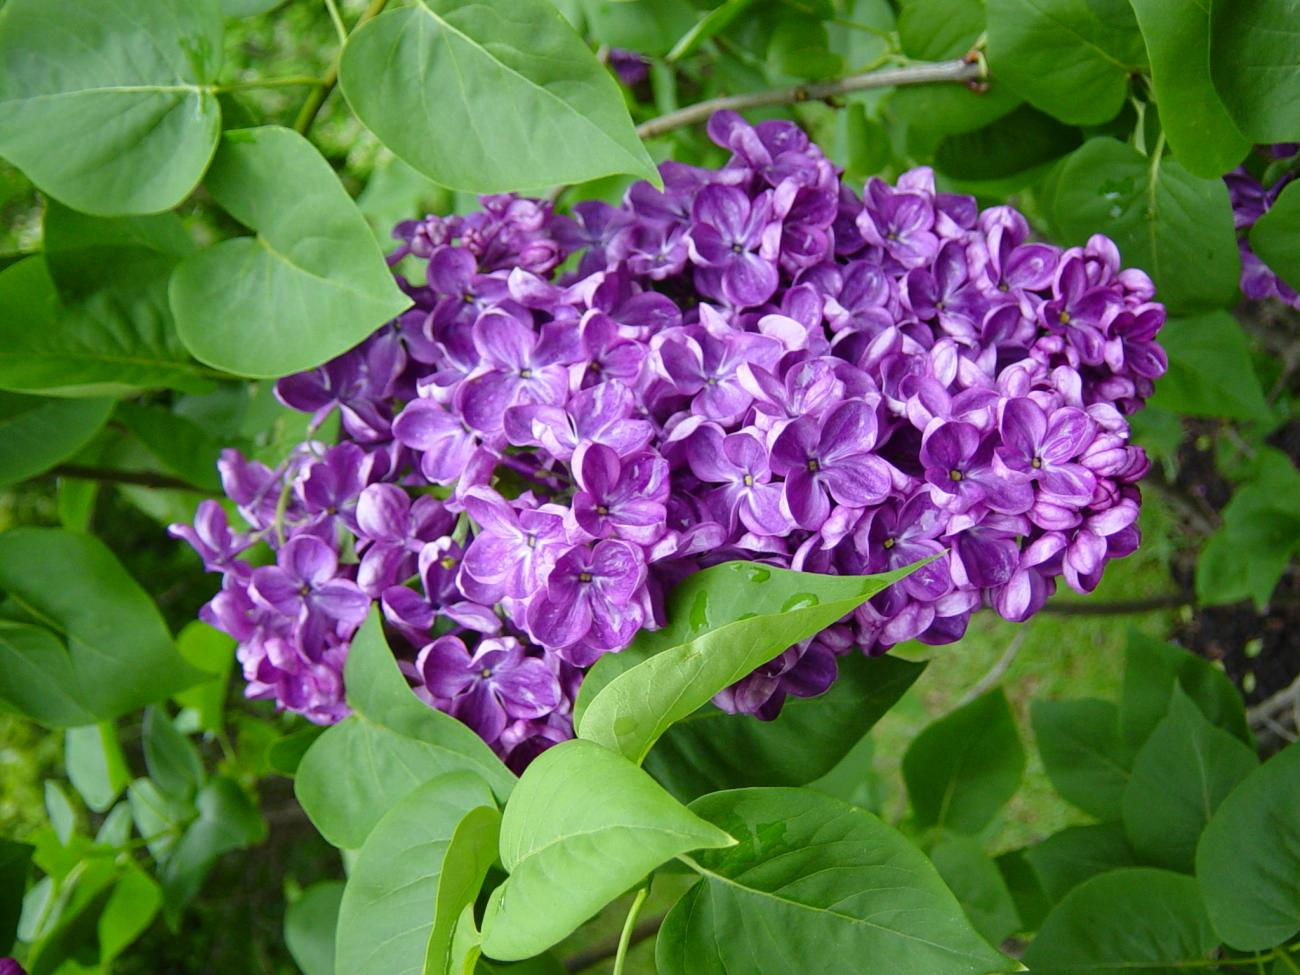 Lilacs: How to Plant, Grow, and Care for Lilac Shrubs | The Old ...